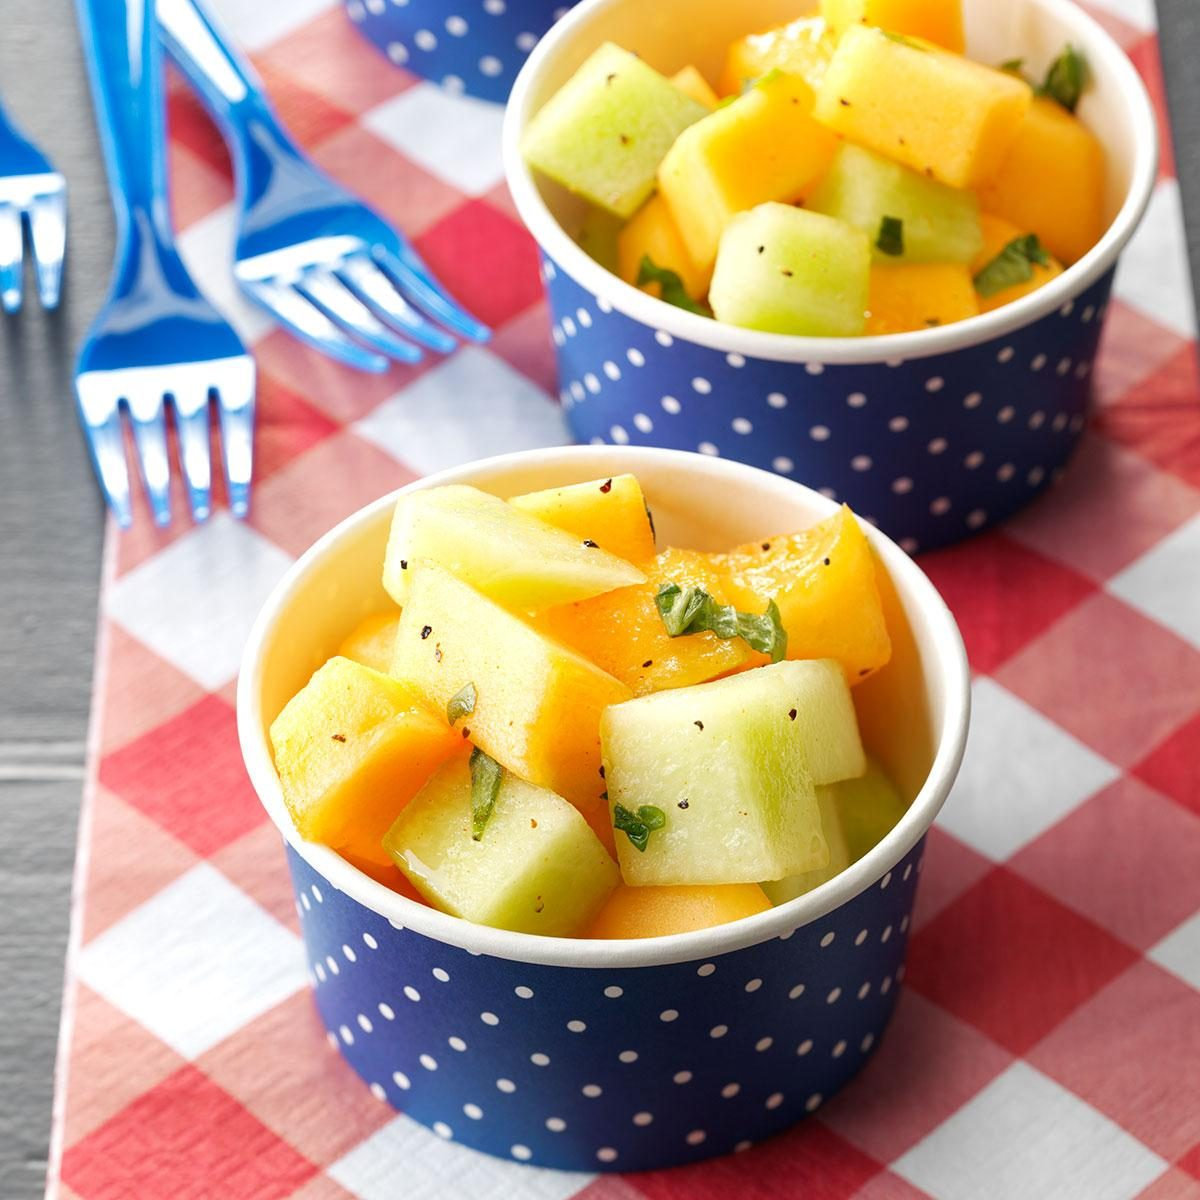 Honey-Melon Salad with Basil